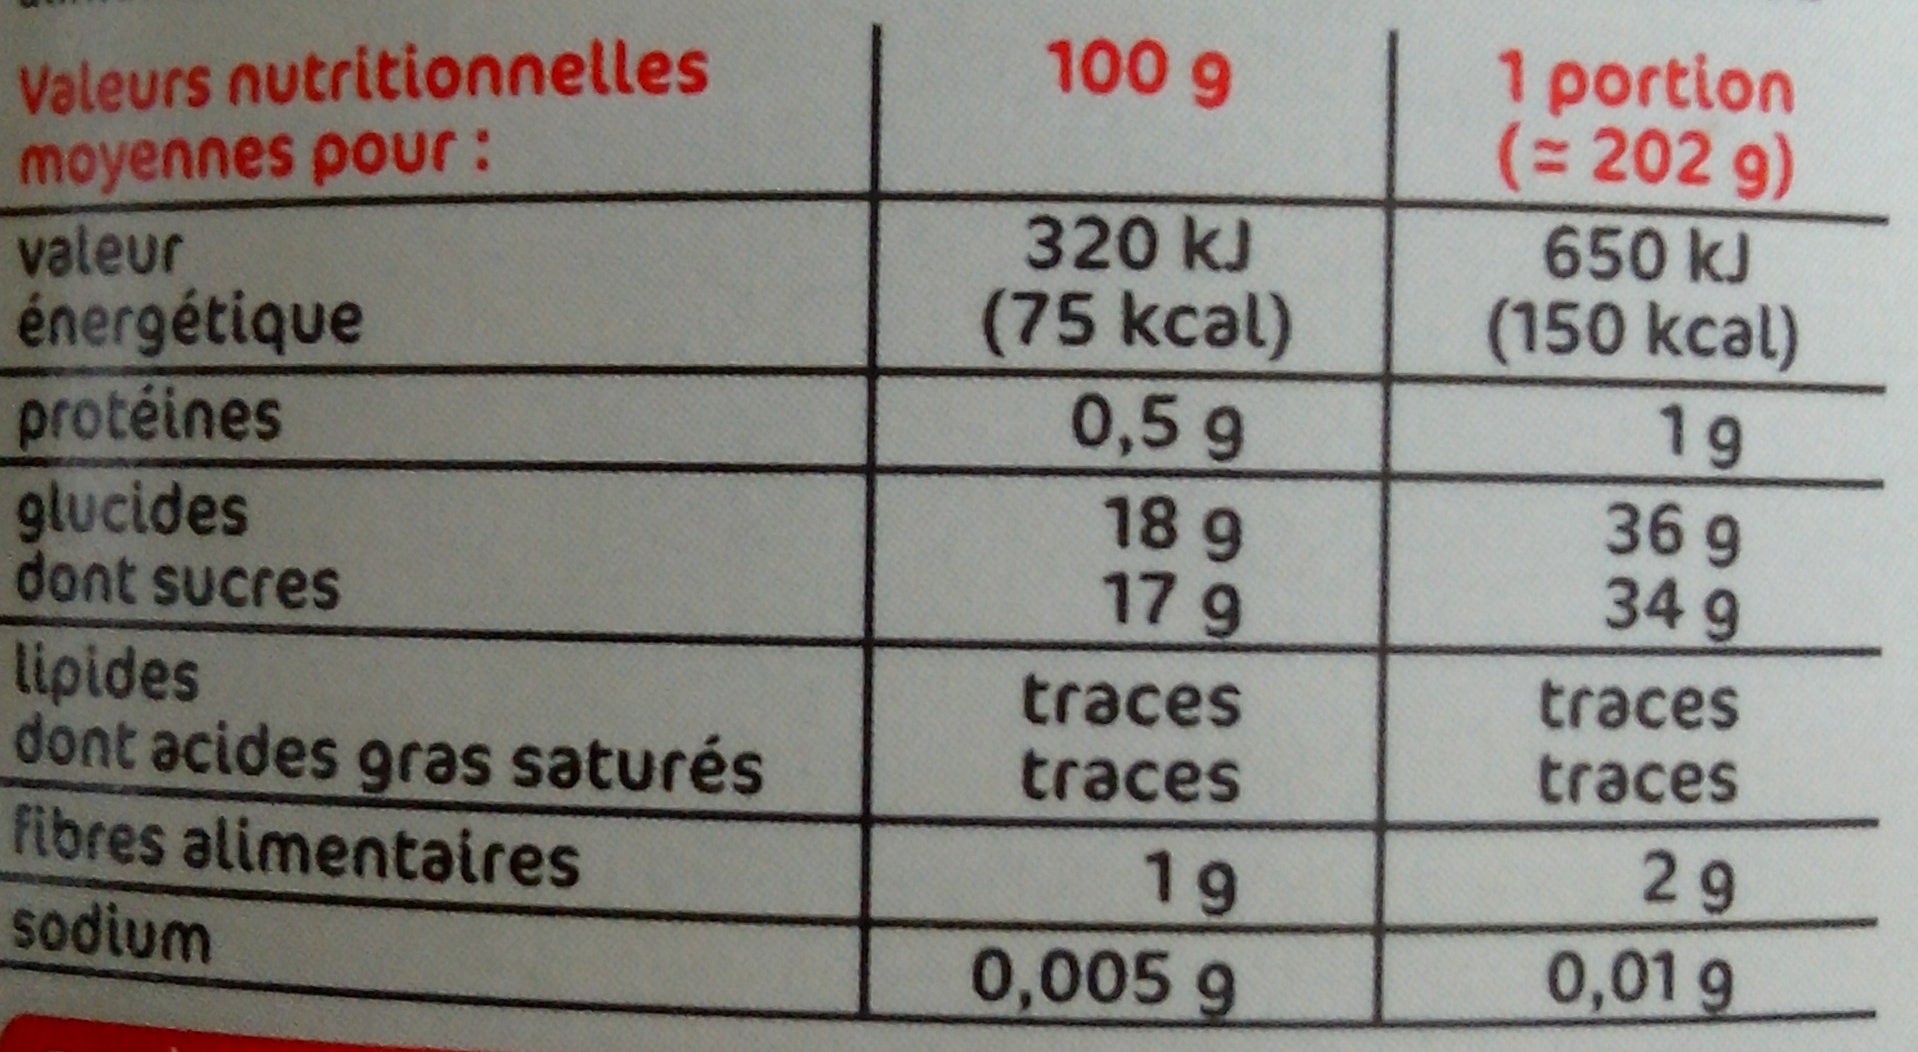 Pêches au sirop - Informations nutritionnelles - fr